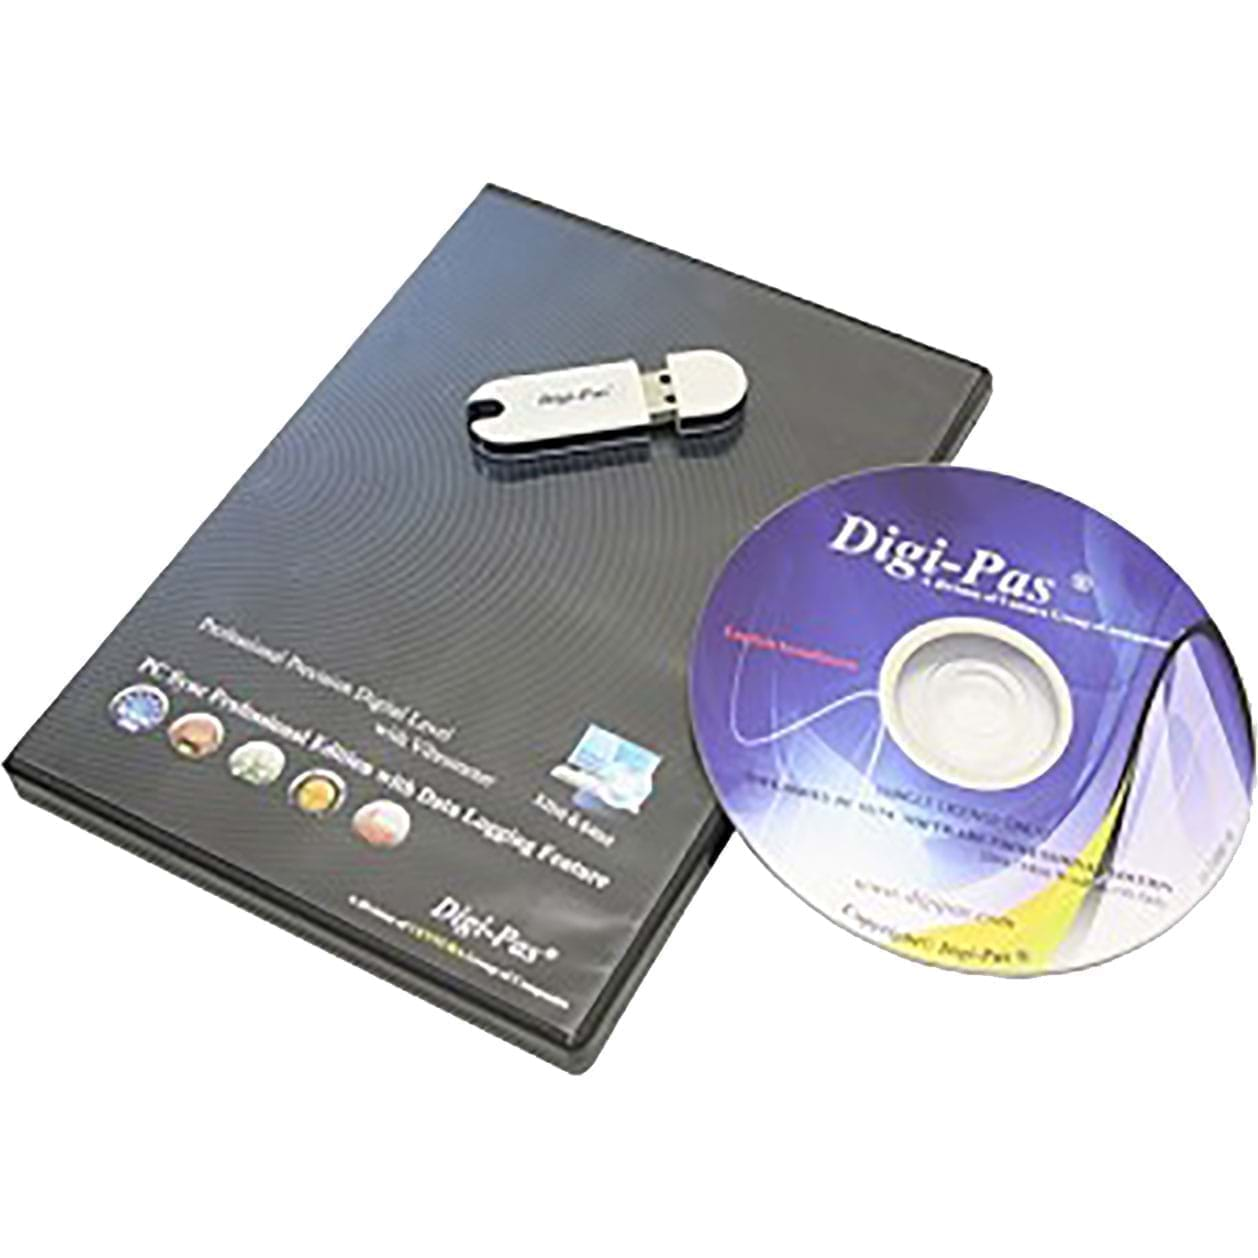 PC Sync Professional Software DWL